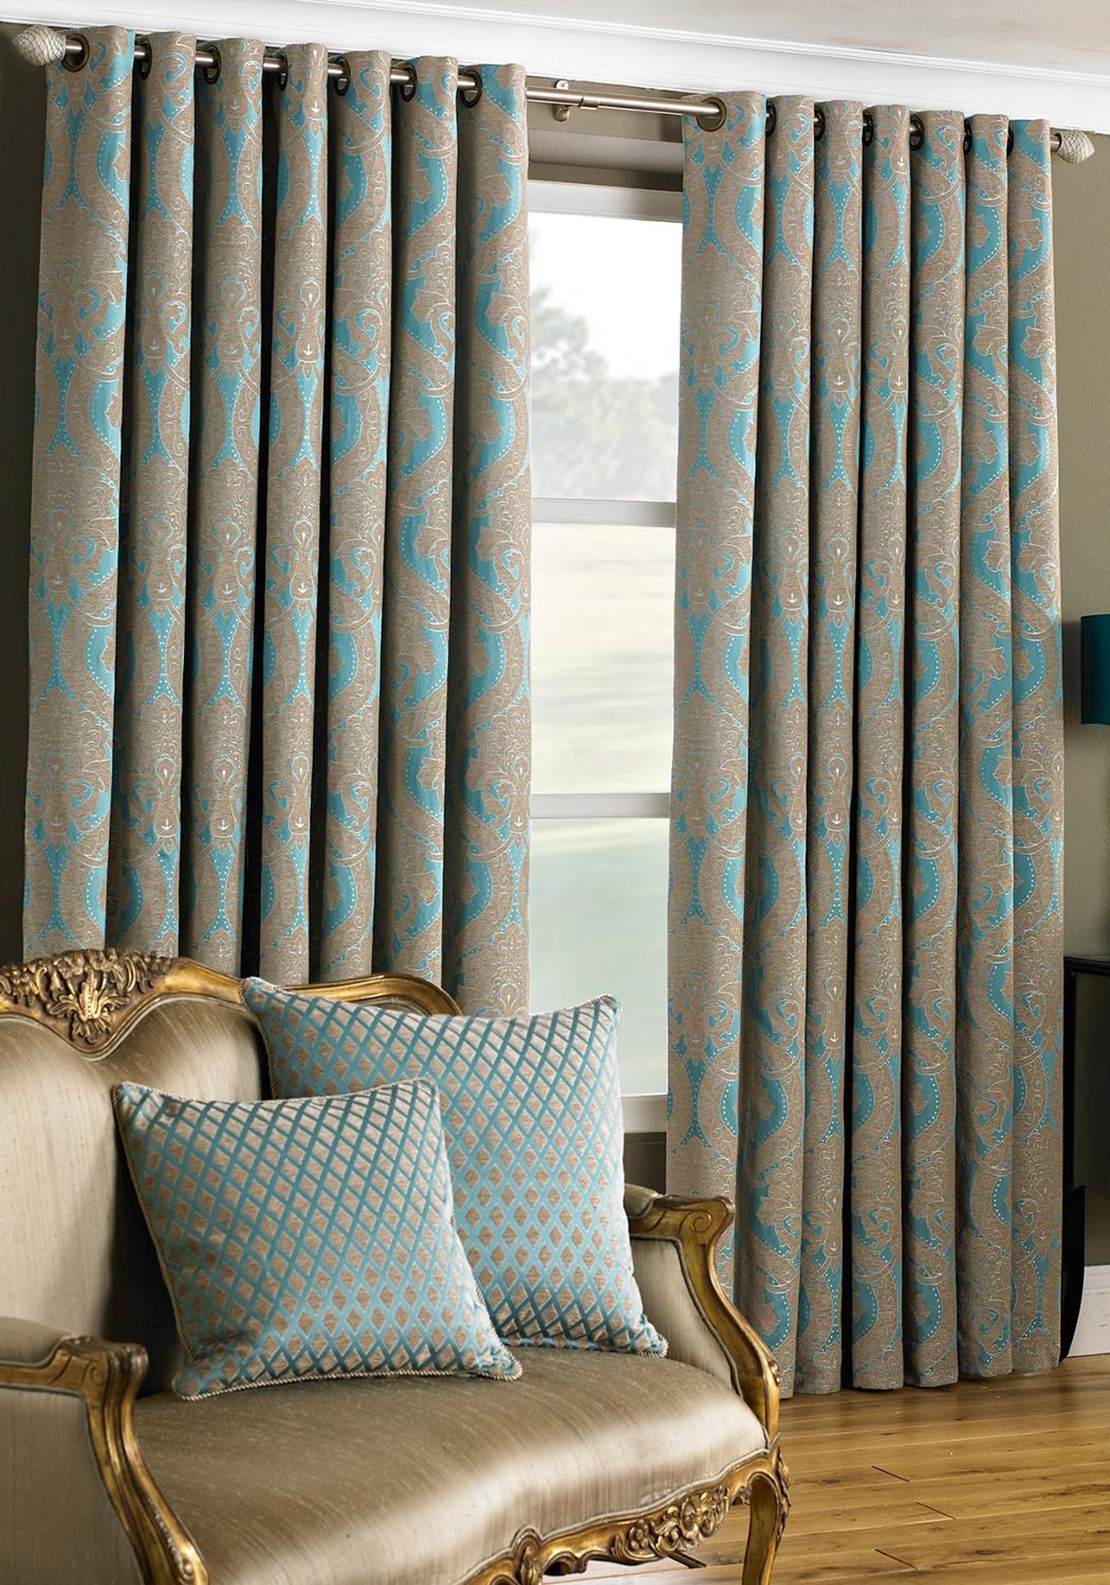 "Paoletti Renaissance Printed Fully Lined Eyelet Curtains 90""x90"", Turquoise"